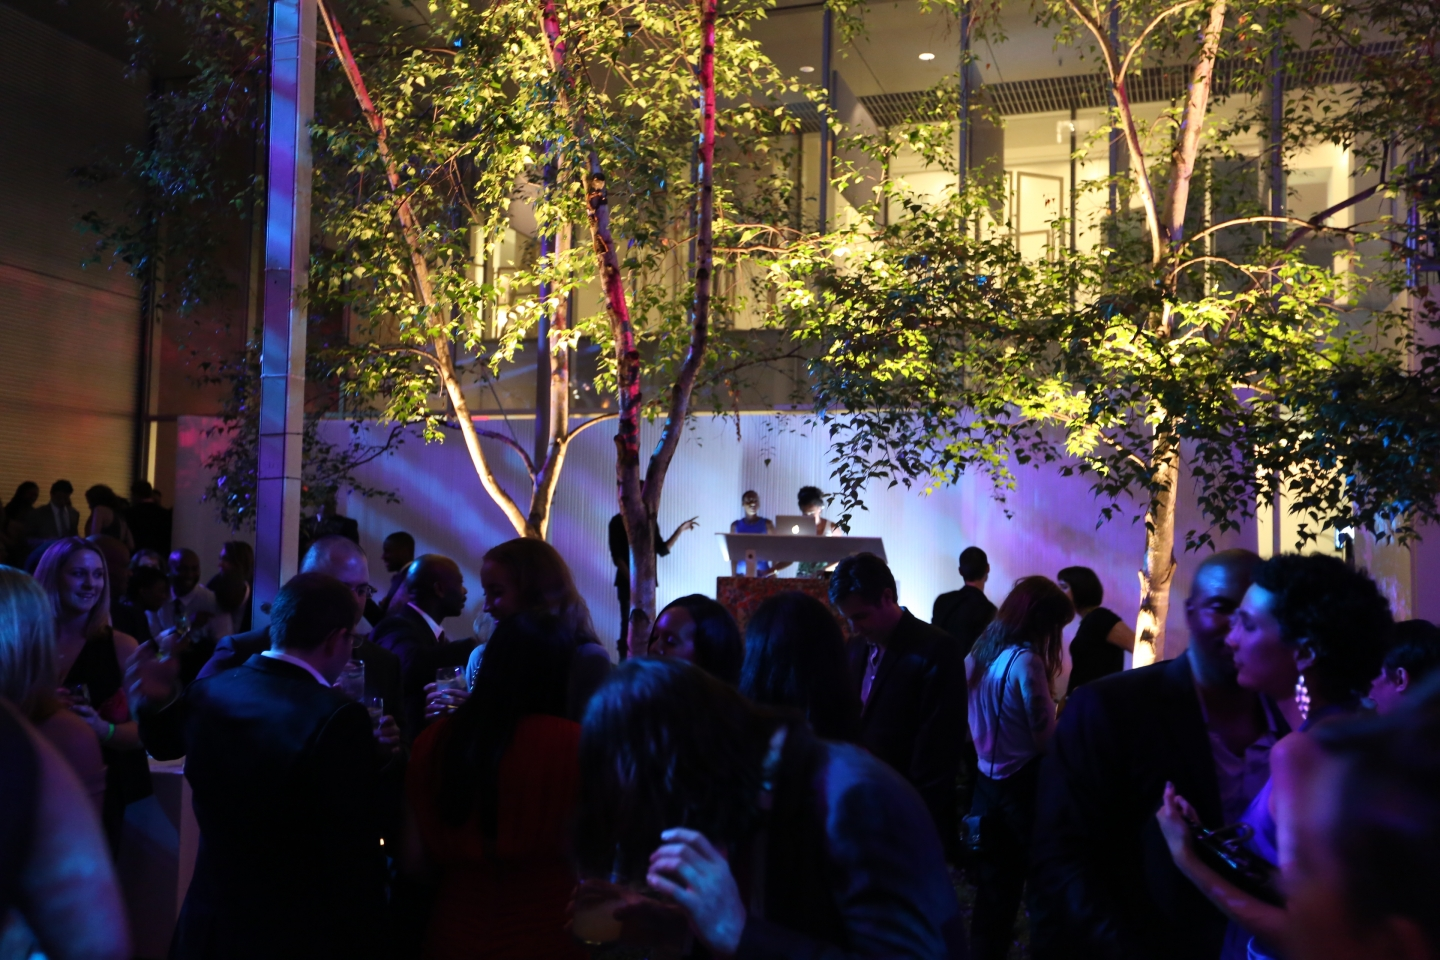 molo white textile softwalls + softblocks with LED at MoMA Party in the Garden in New York